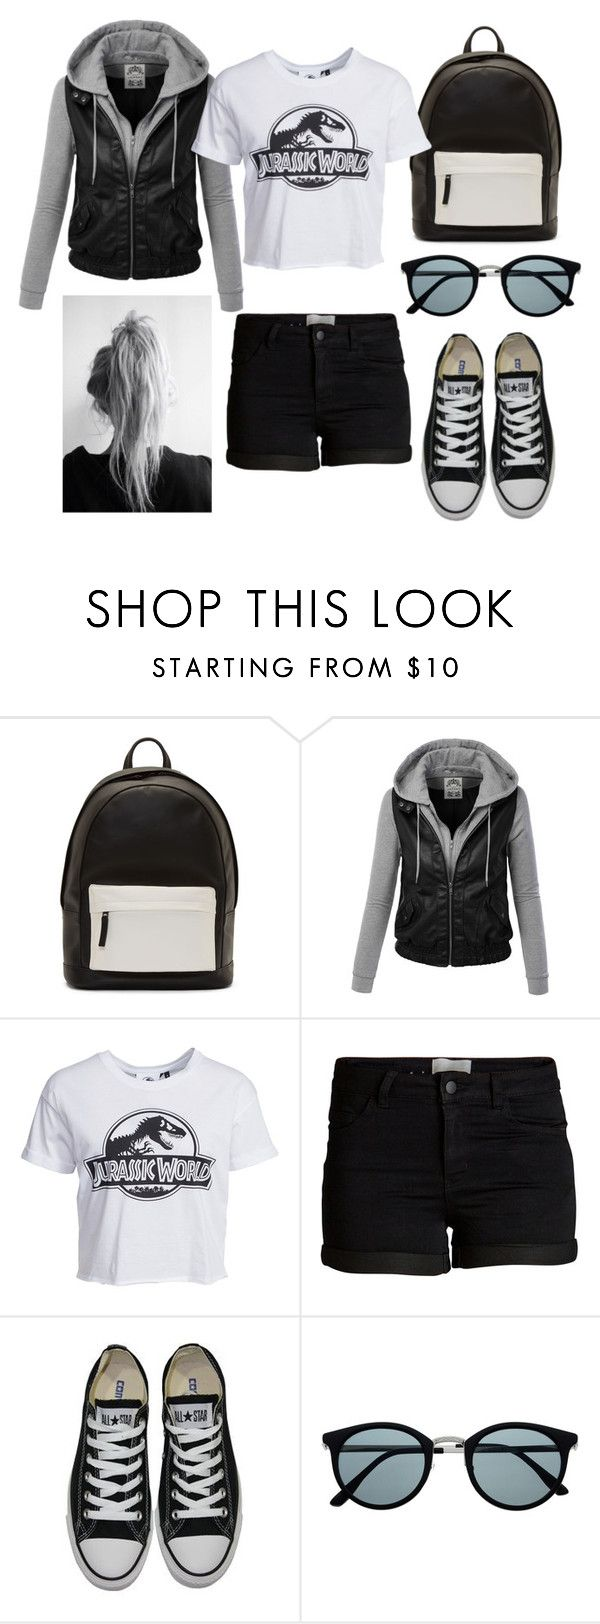 """""""5518"""" by gabiicosta ❤ liked on Polyvore featuring PB 0110, New Look, Pieces, Converse, Retrò, women's clothing, women, female, woman and misses"""